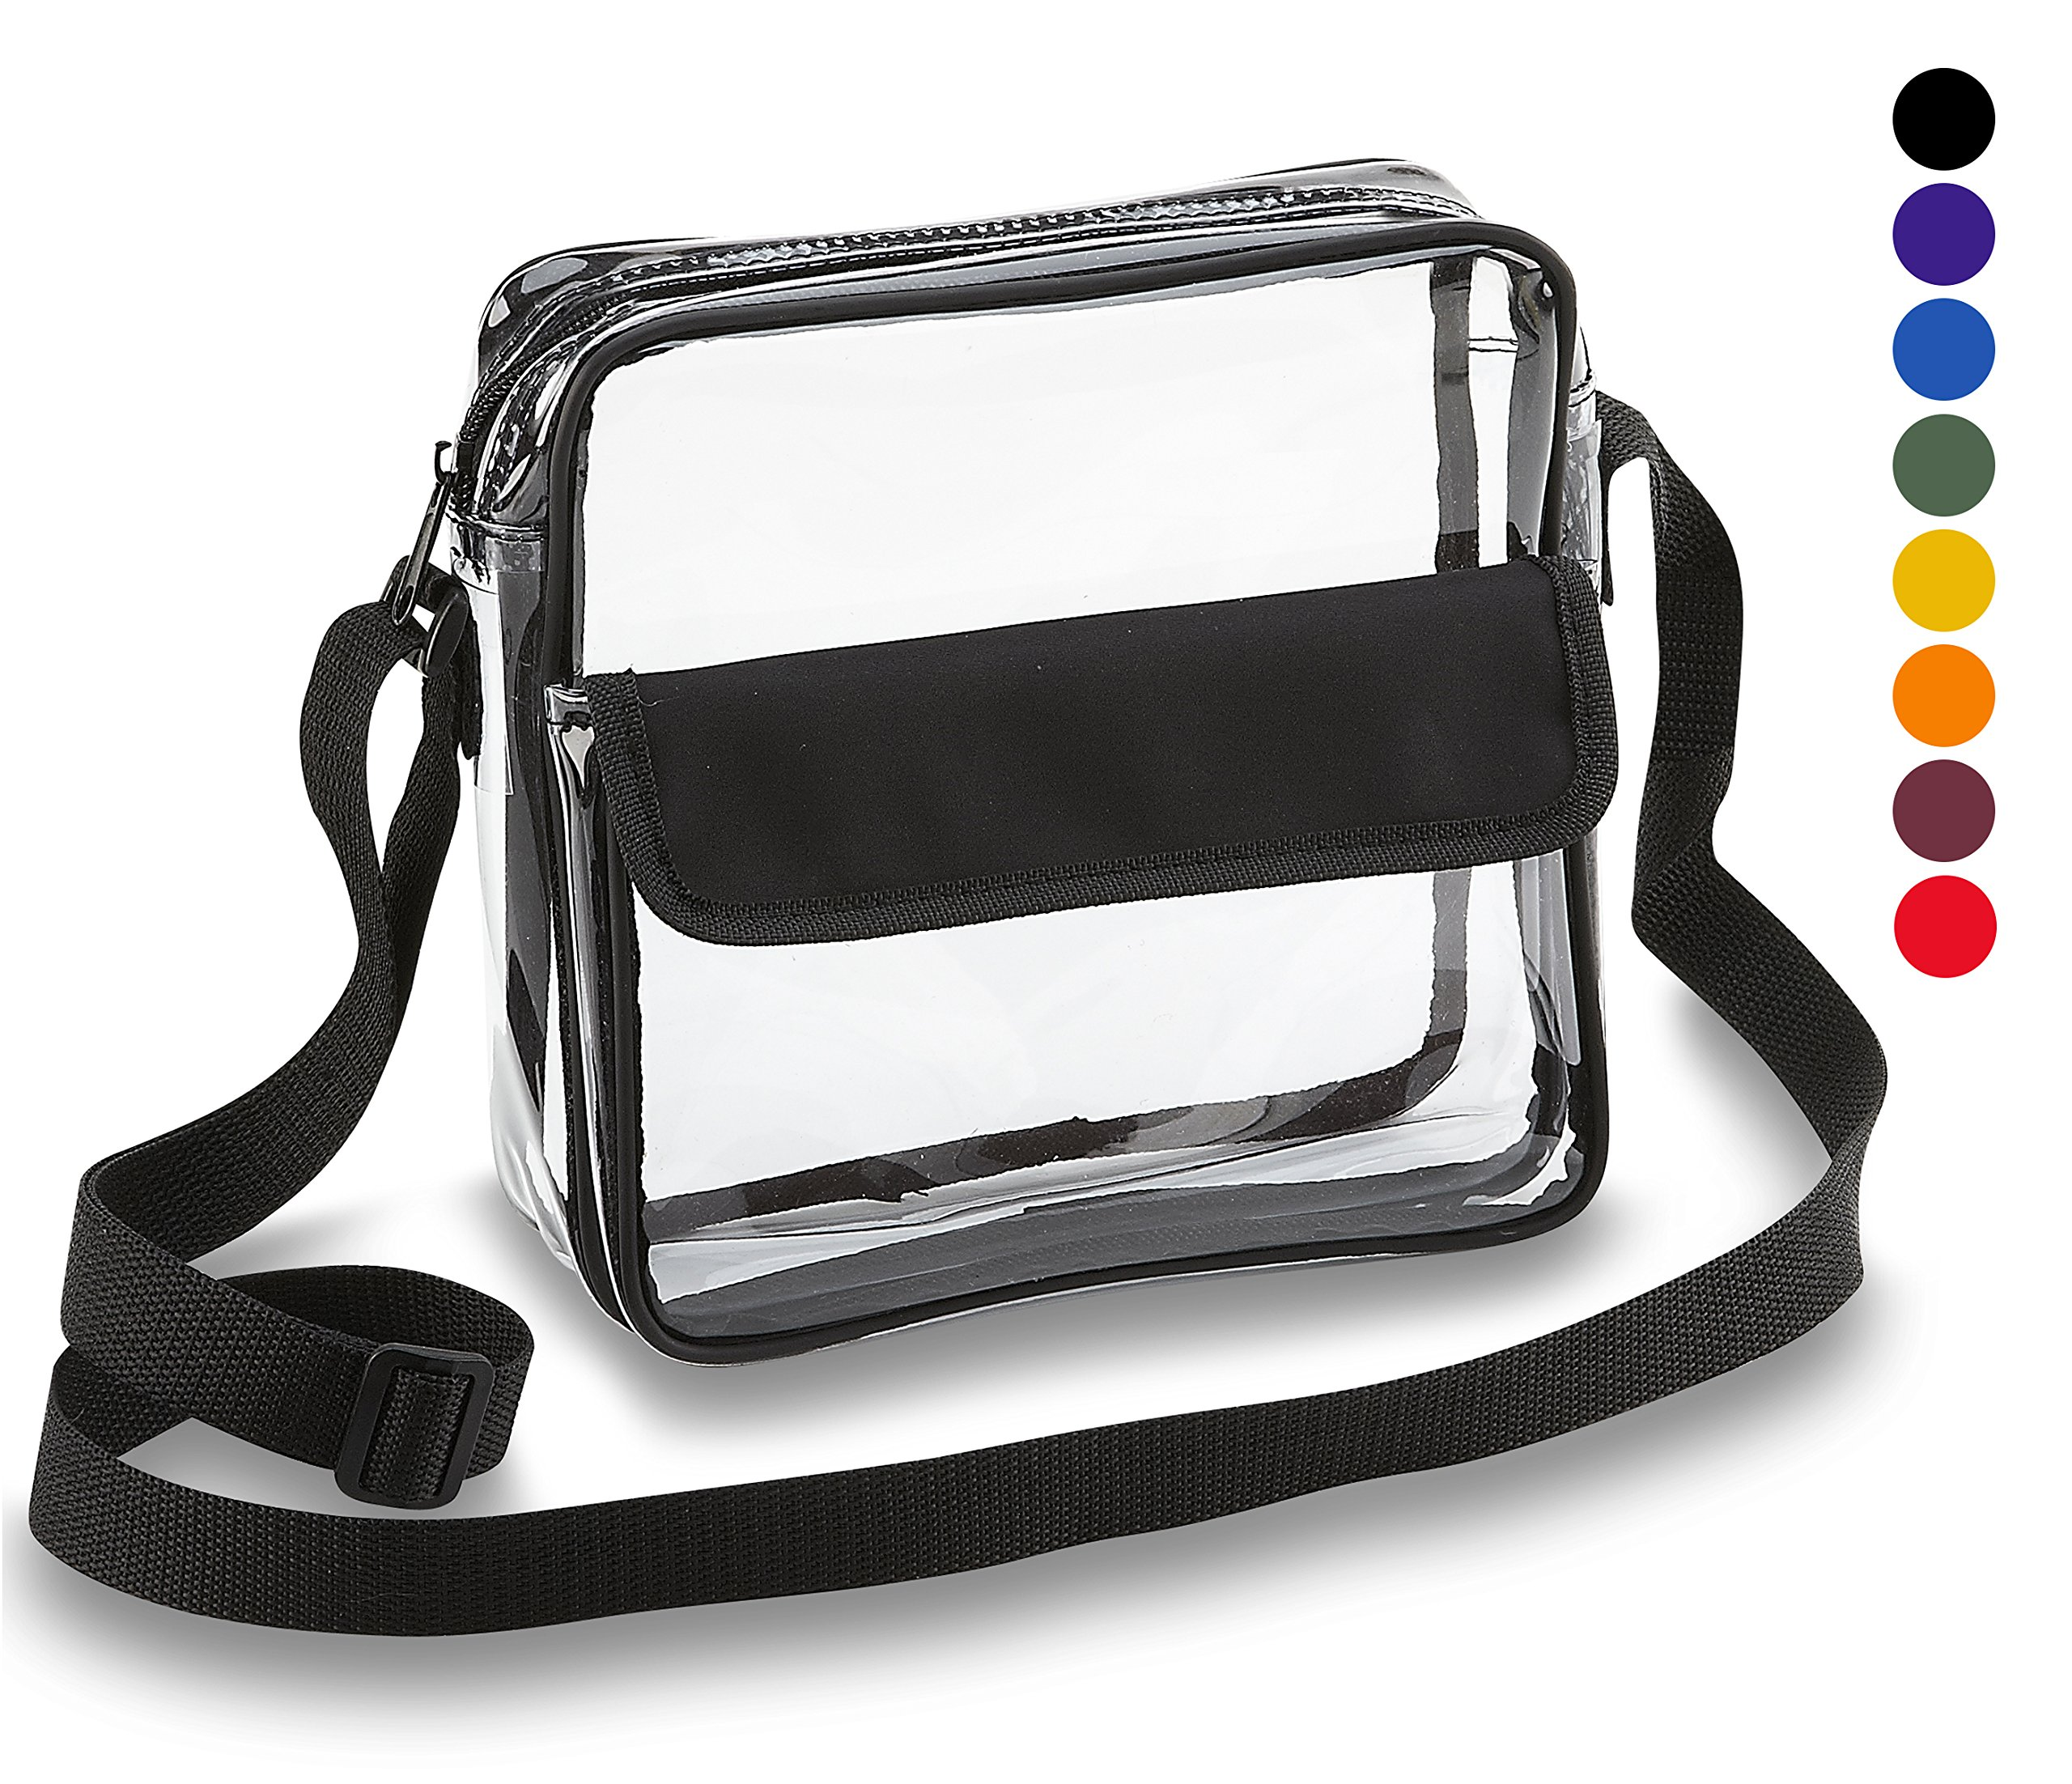 Clear Crossbody Messenger Shoulder Bag With Adjustable Strap NFL Stadium Approved Transparent Purse by Clear Handbags & More